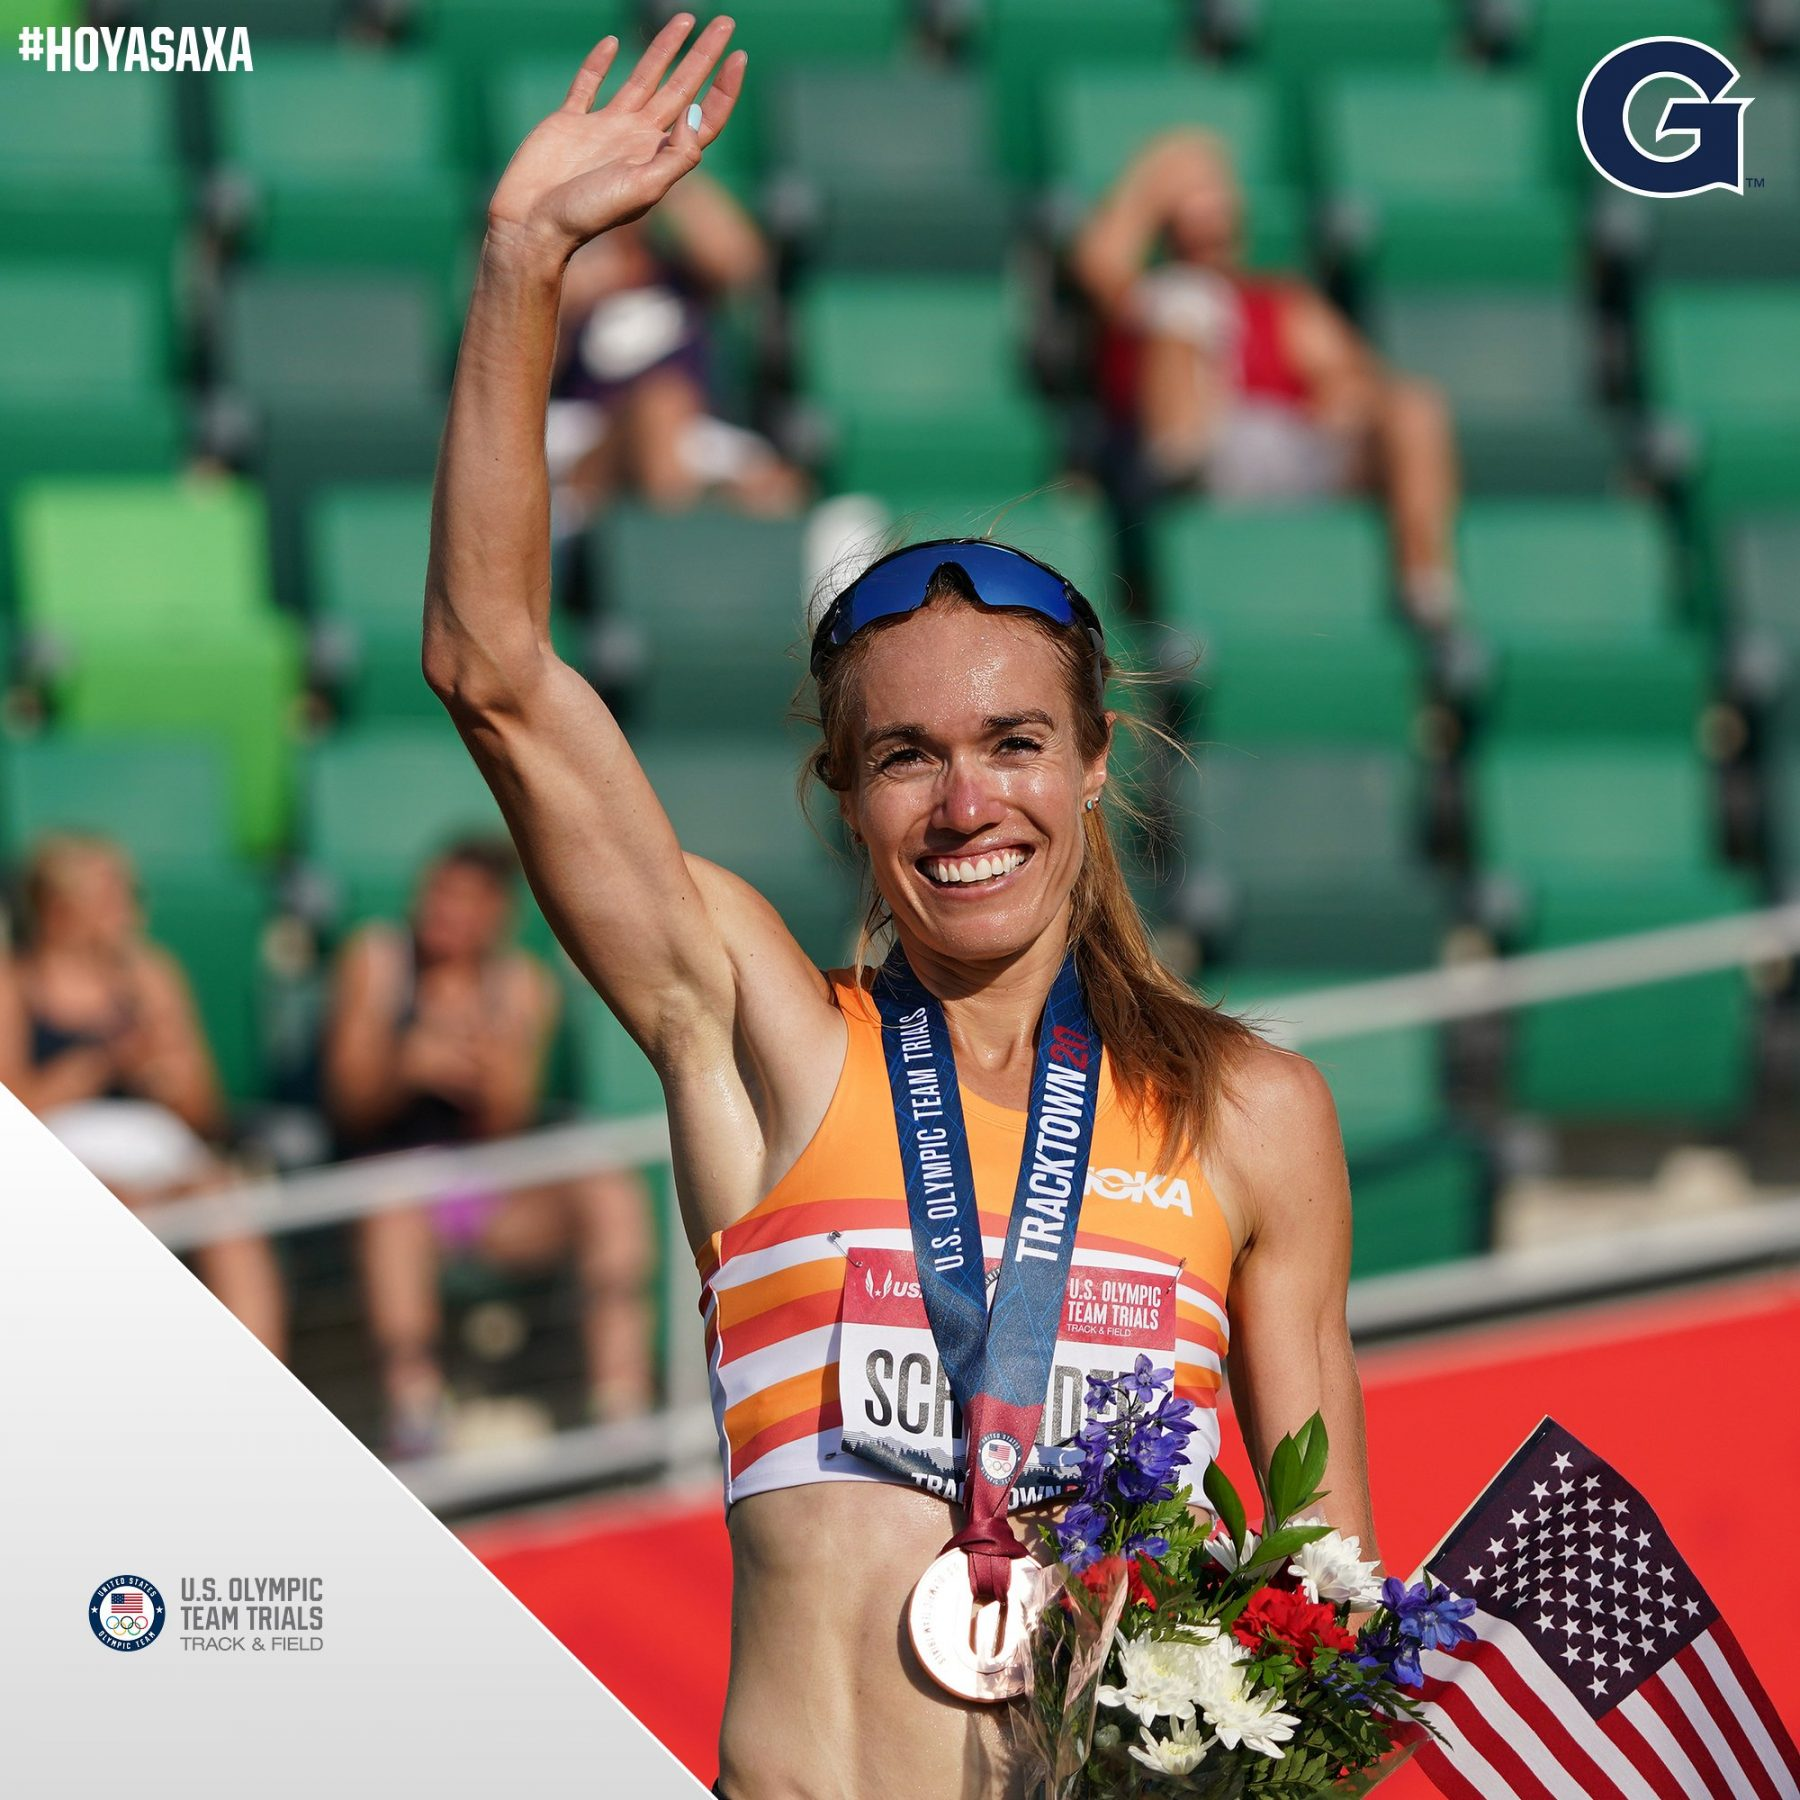 Rachel Schneider waves while wearing a medal